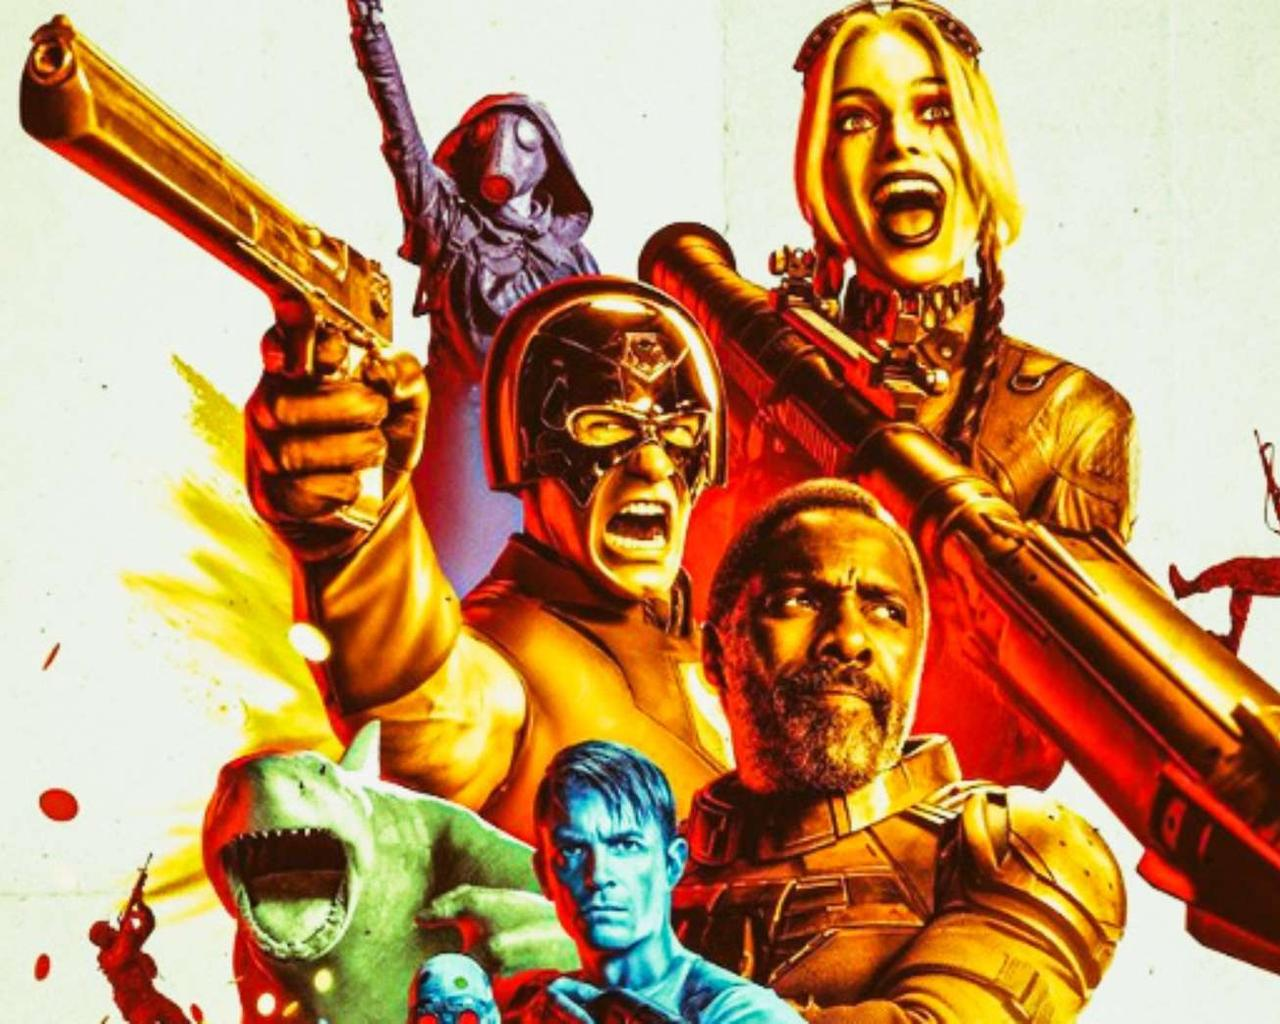 The Suicide Squad: The anti-heroes land in a sassy trailer.